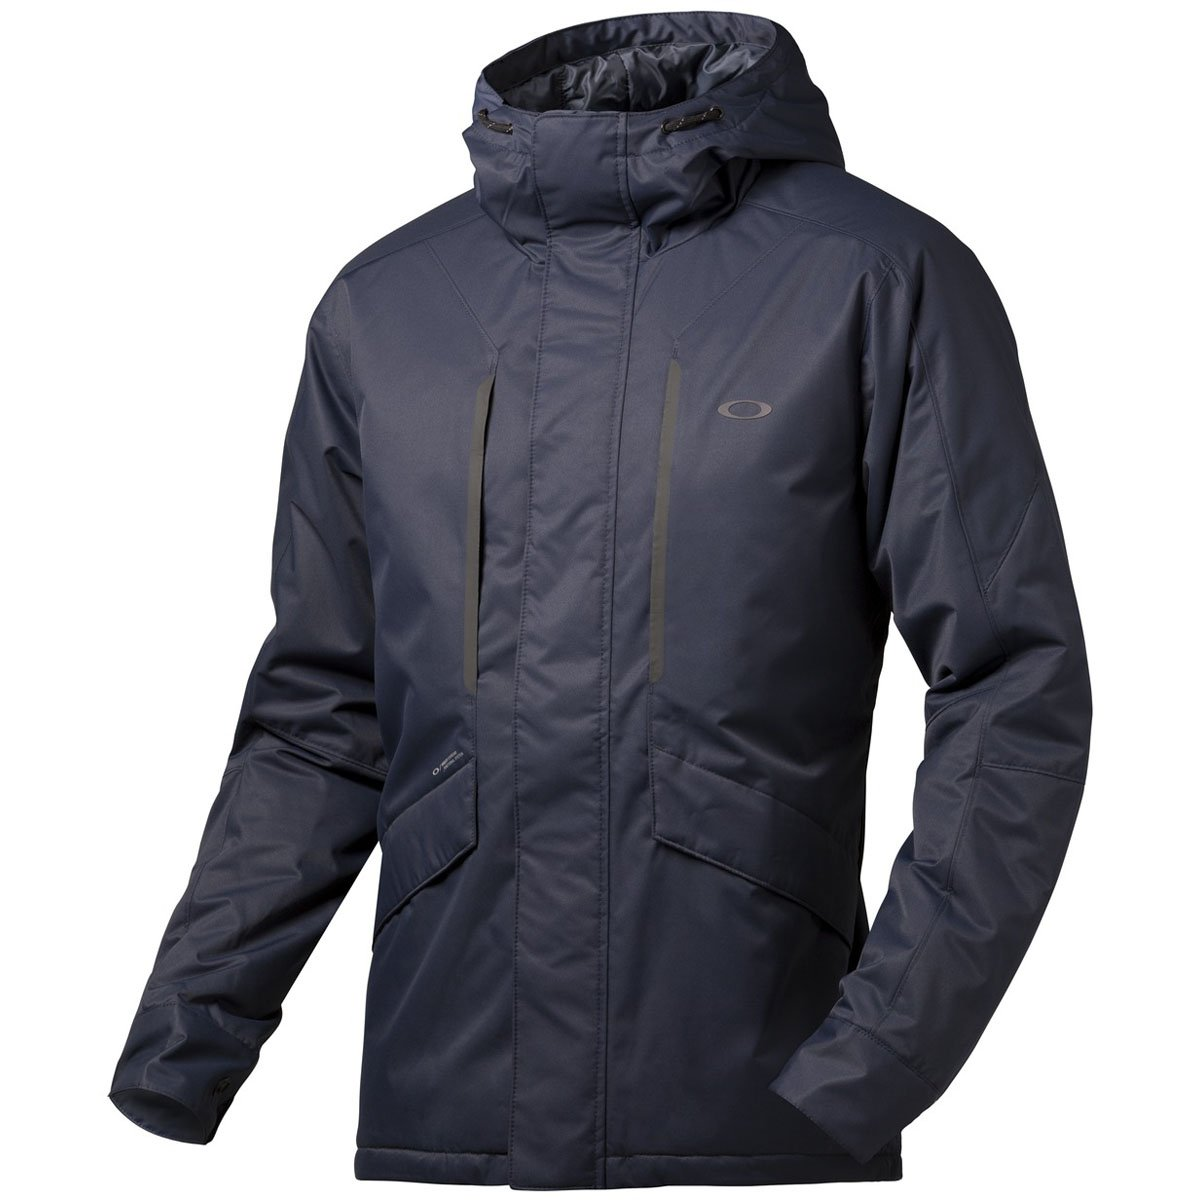 Oakley Men's O-Utility Parka, Fathom, X-Large by Oakley